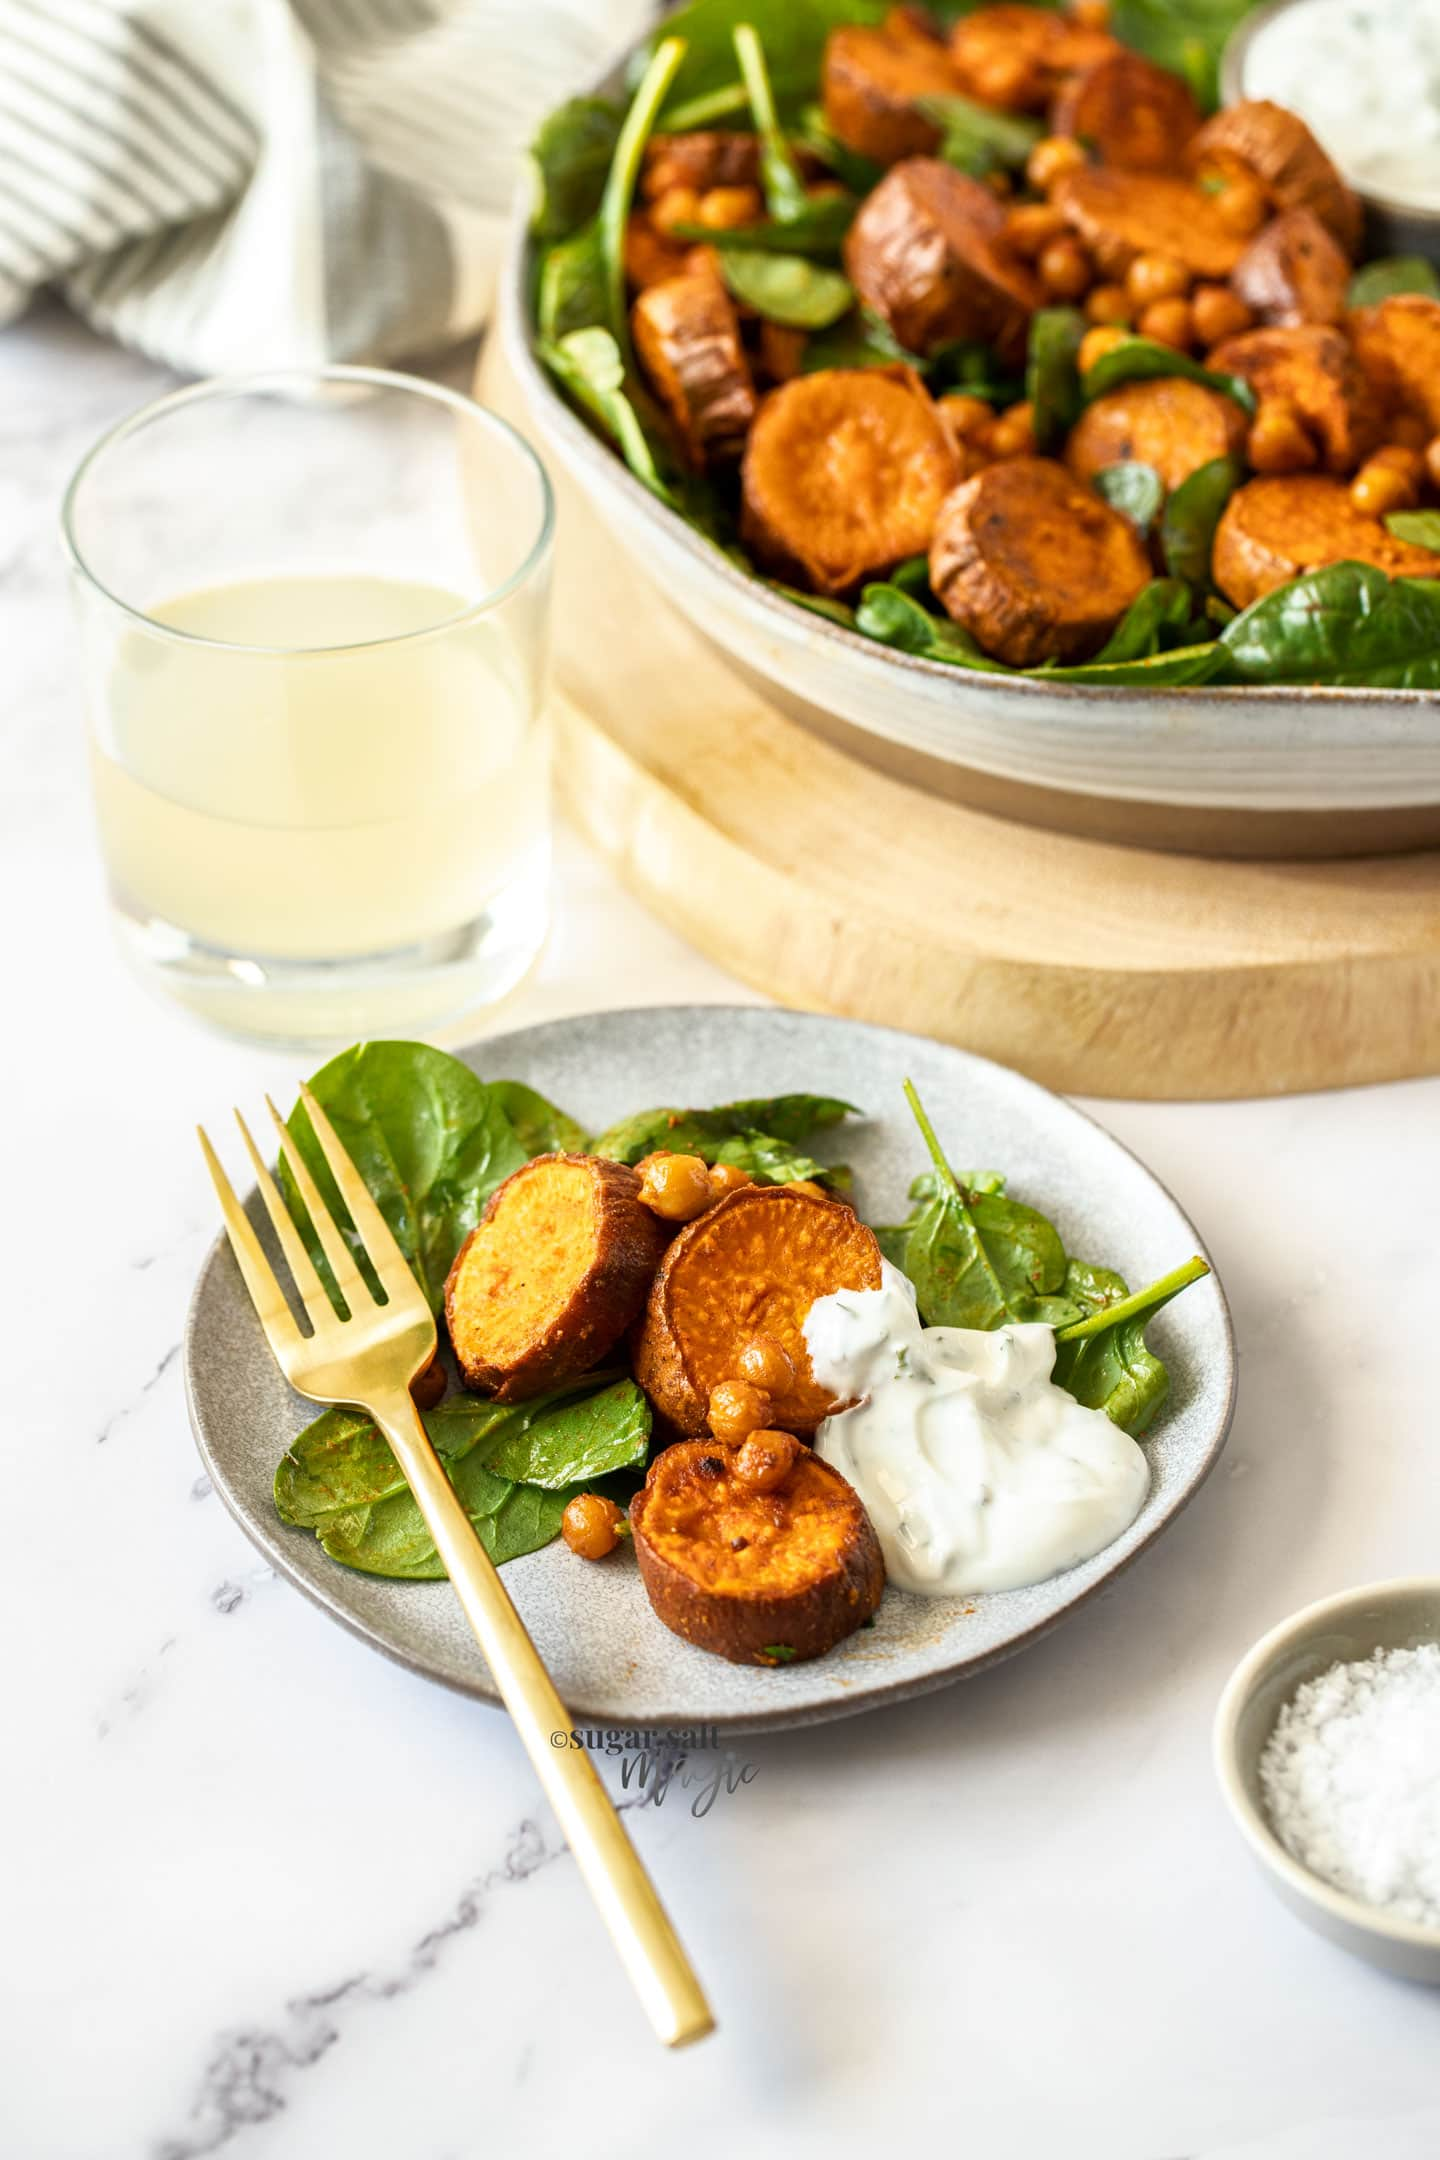 some sweet potato salad and yoghurt on a grey plate with a gold fork